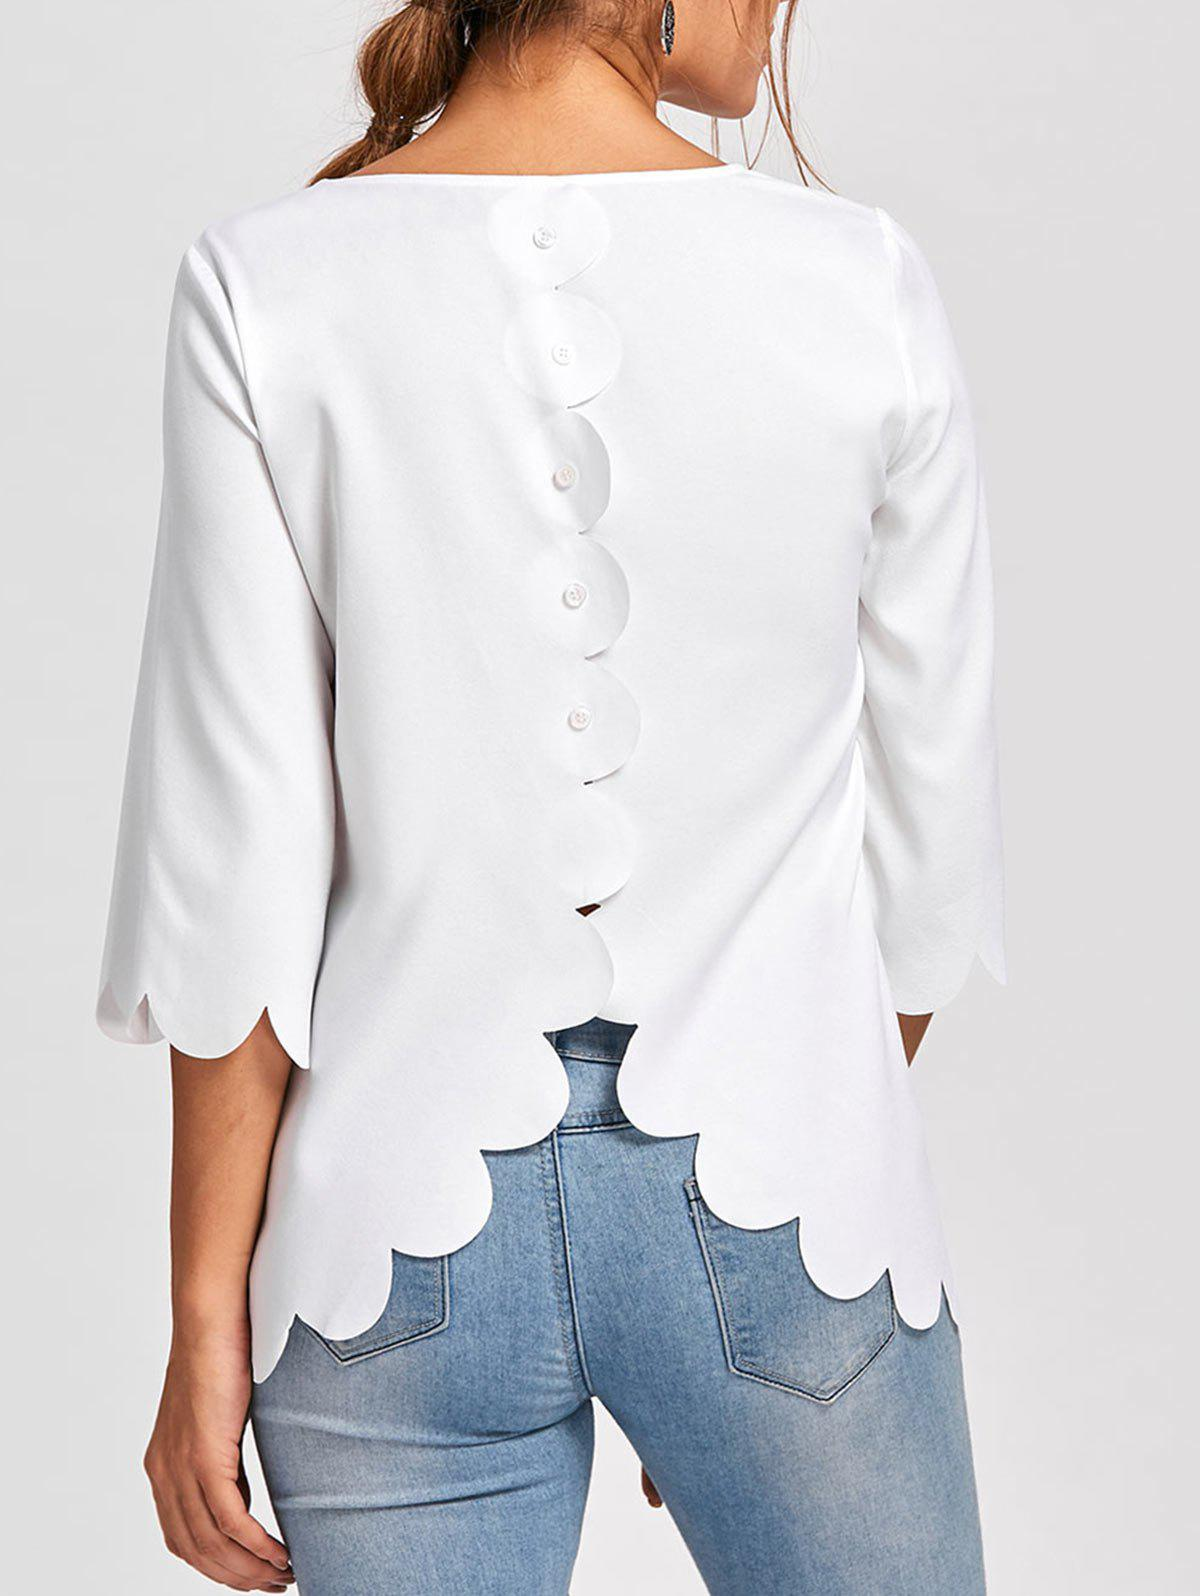 Button Embellished Scalloped Edge BlouseWOMEN<br><br>Size: XL; Color: WHITE; Occasion: Casual ,Evening,Party; Style: Fashion; Material: Polyester; Shirt Length: Long; Sleeve Length: Full; Collar: Round Neck; Pattern Type: Solid; Embellishment: Button; Season: Fall,Spring,Summer; Weight: 0.1700kg; Package Contents: 1 x Blouse;